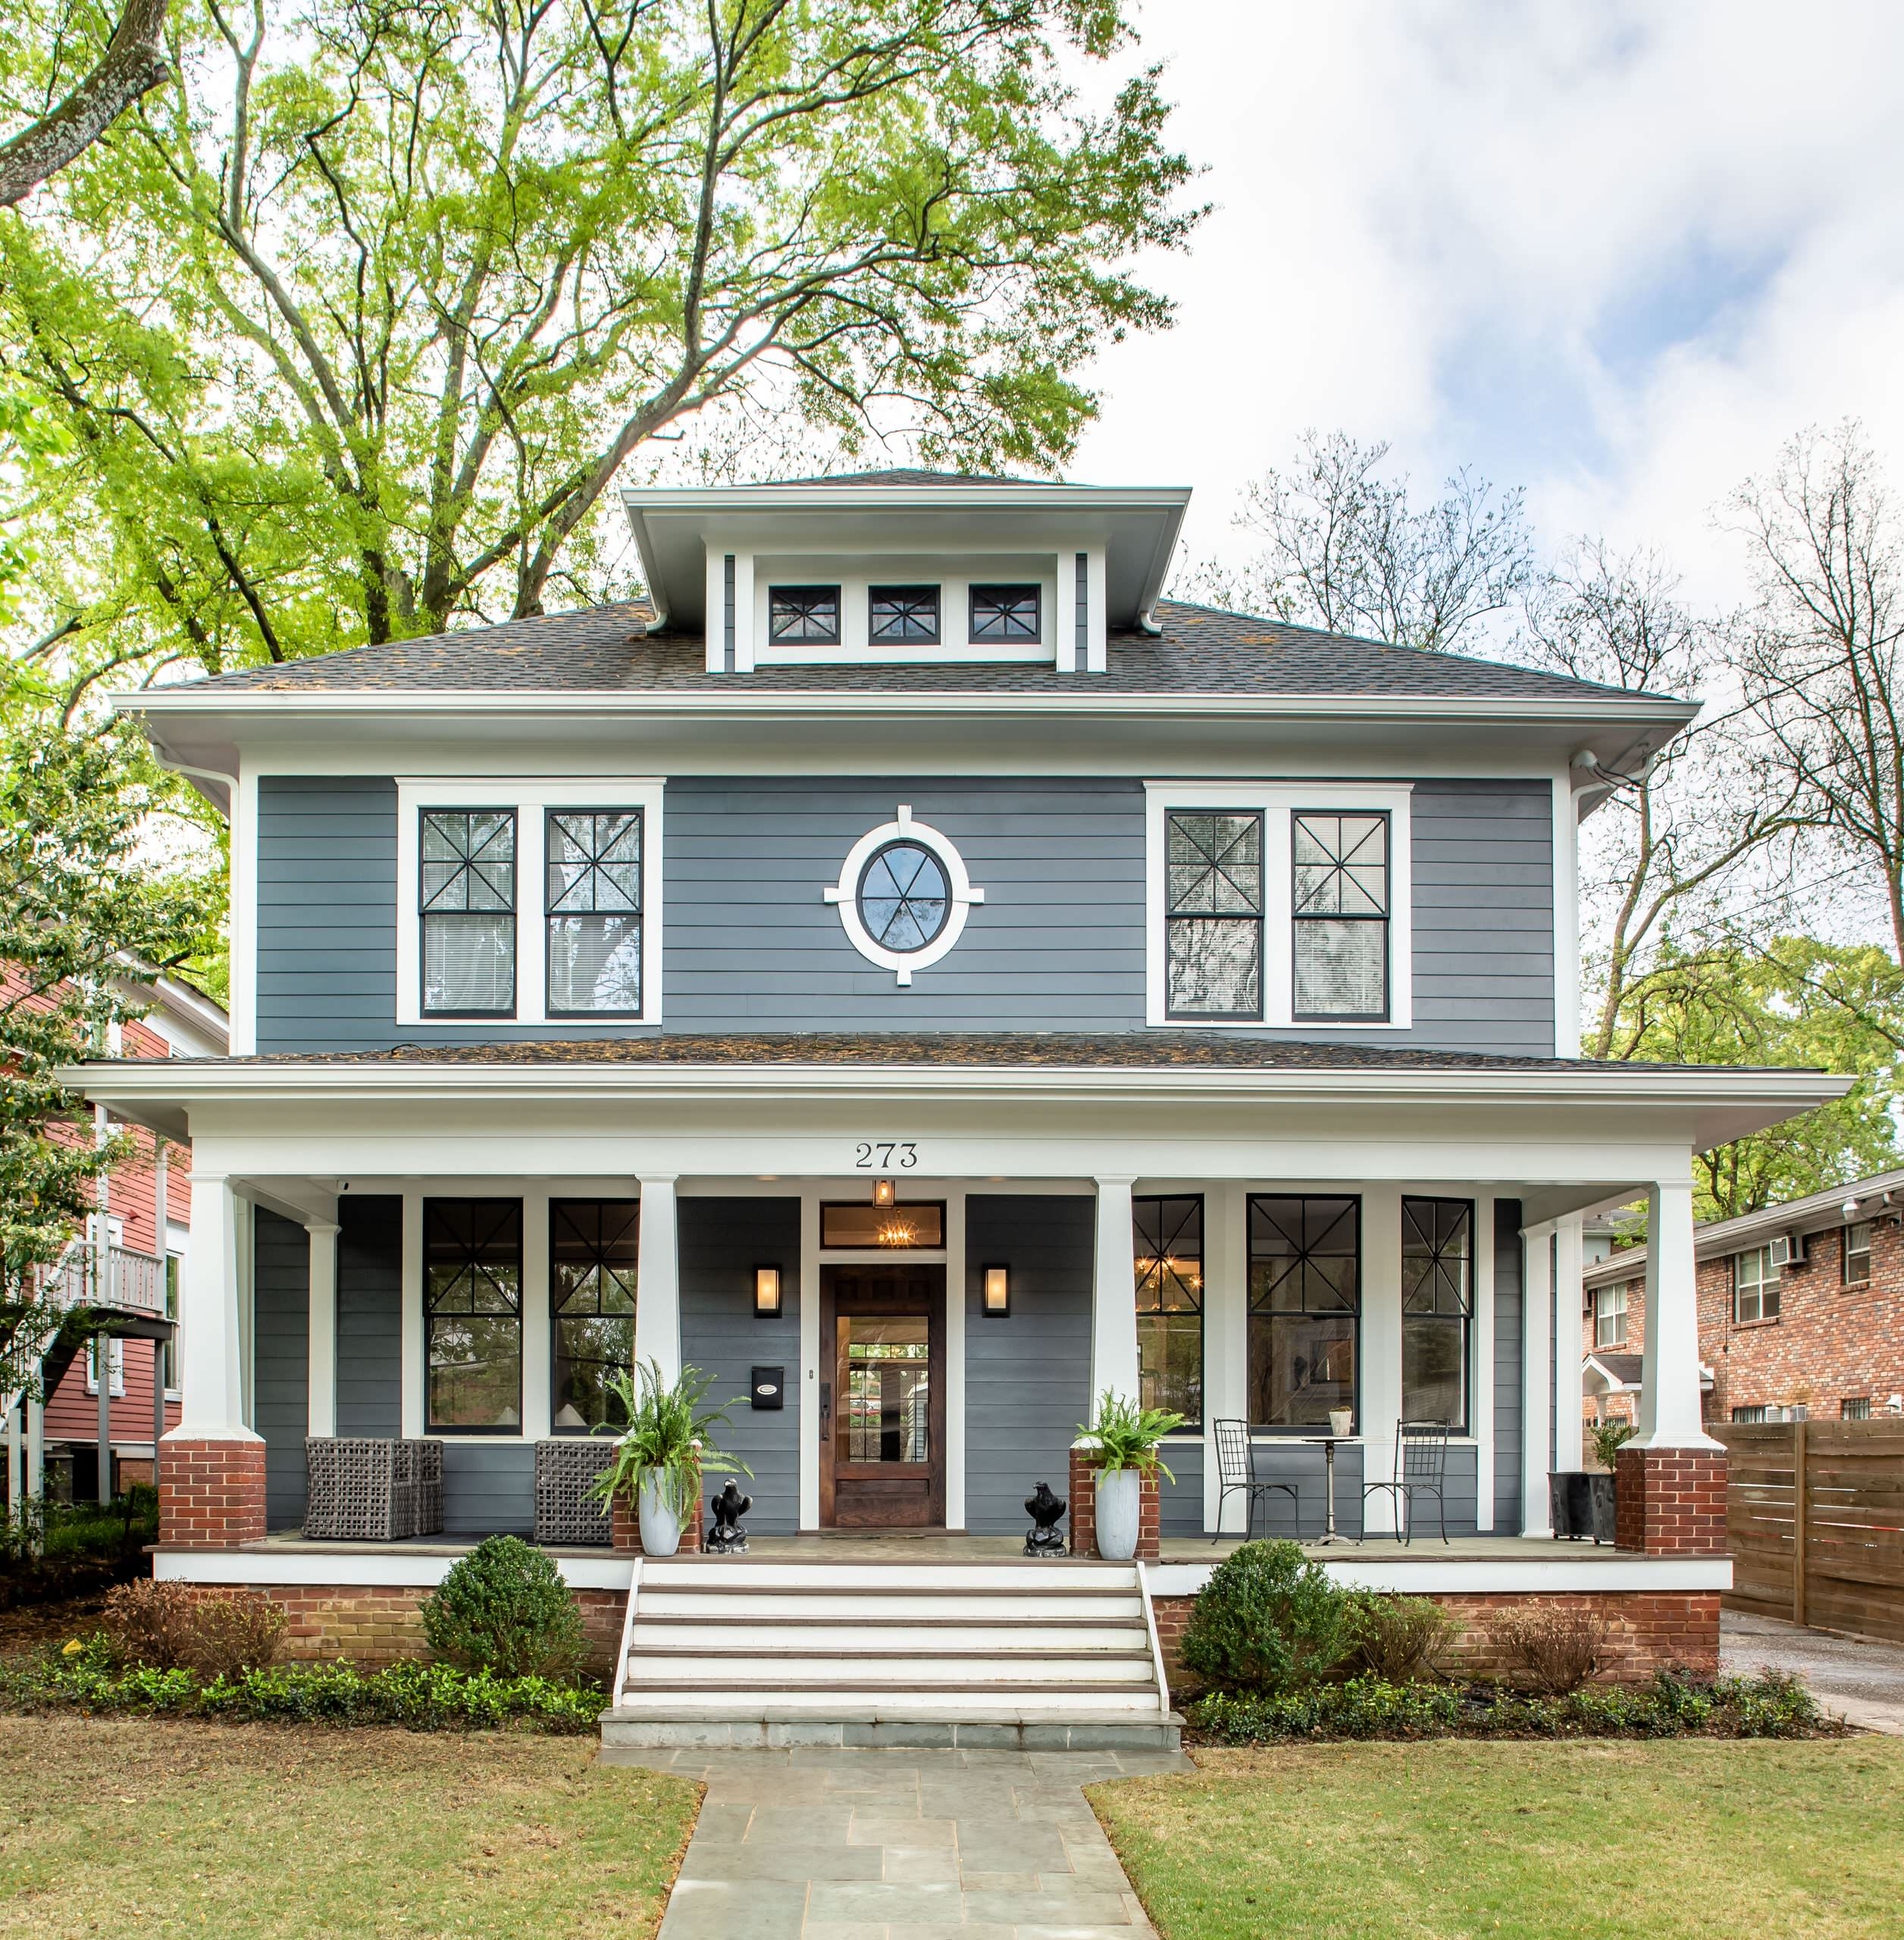 75 Beautiful Exterior Home With A Hip Roof Pictures Ideas February 2021 Houzz